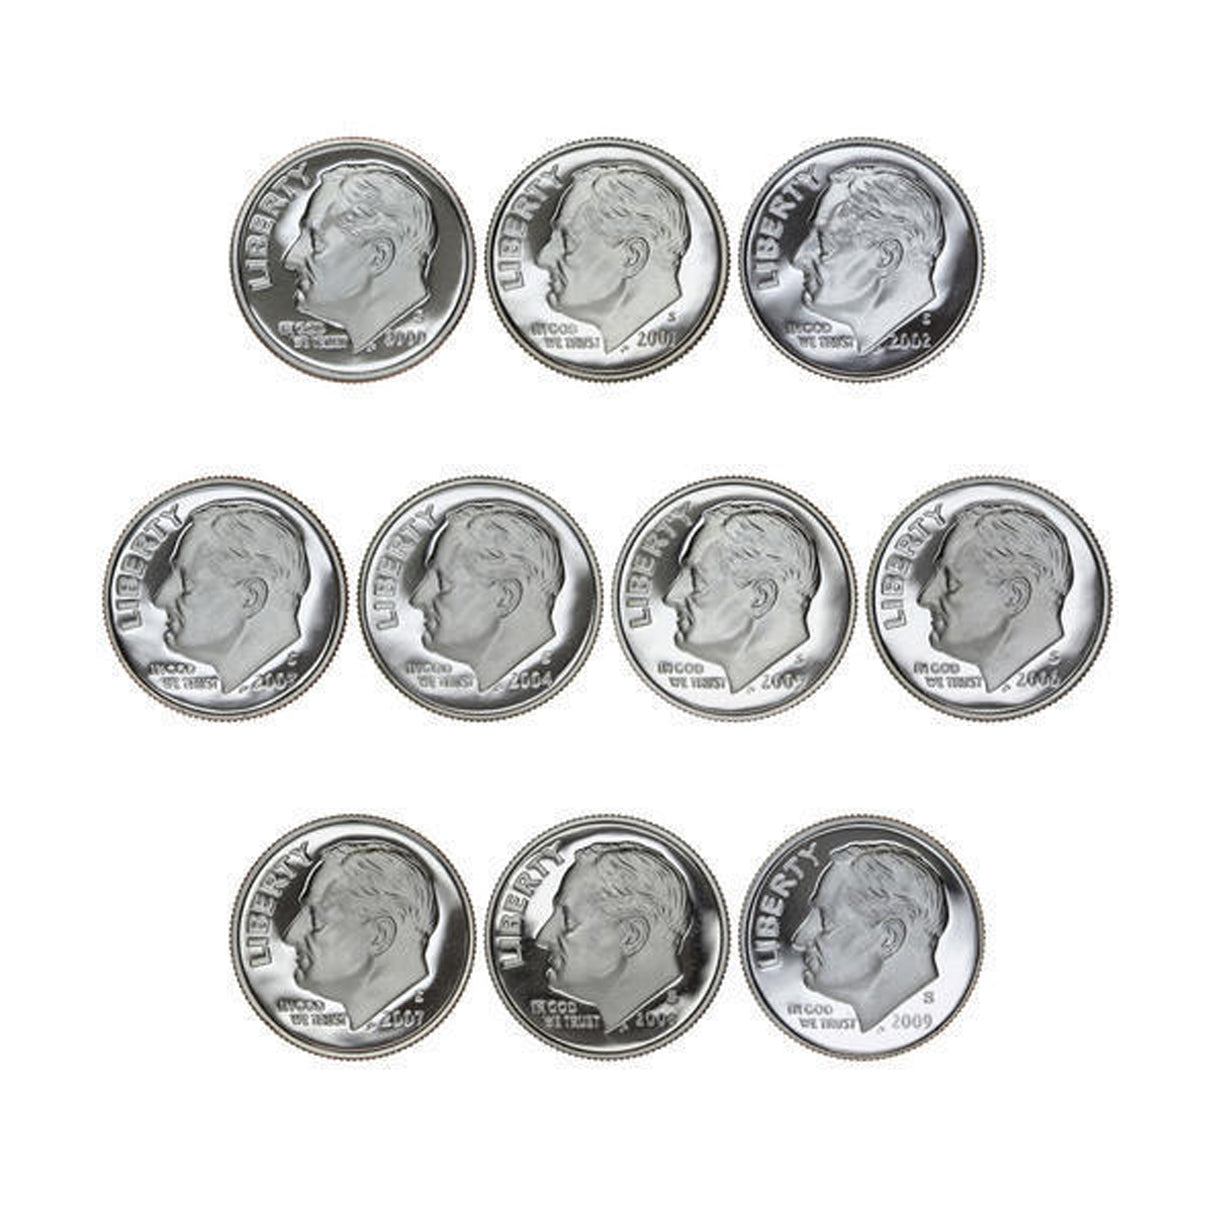 2000-2009 S Proof Roosevelt Dime Run CN-Clad 10 Coins